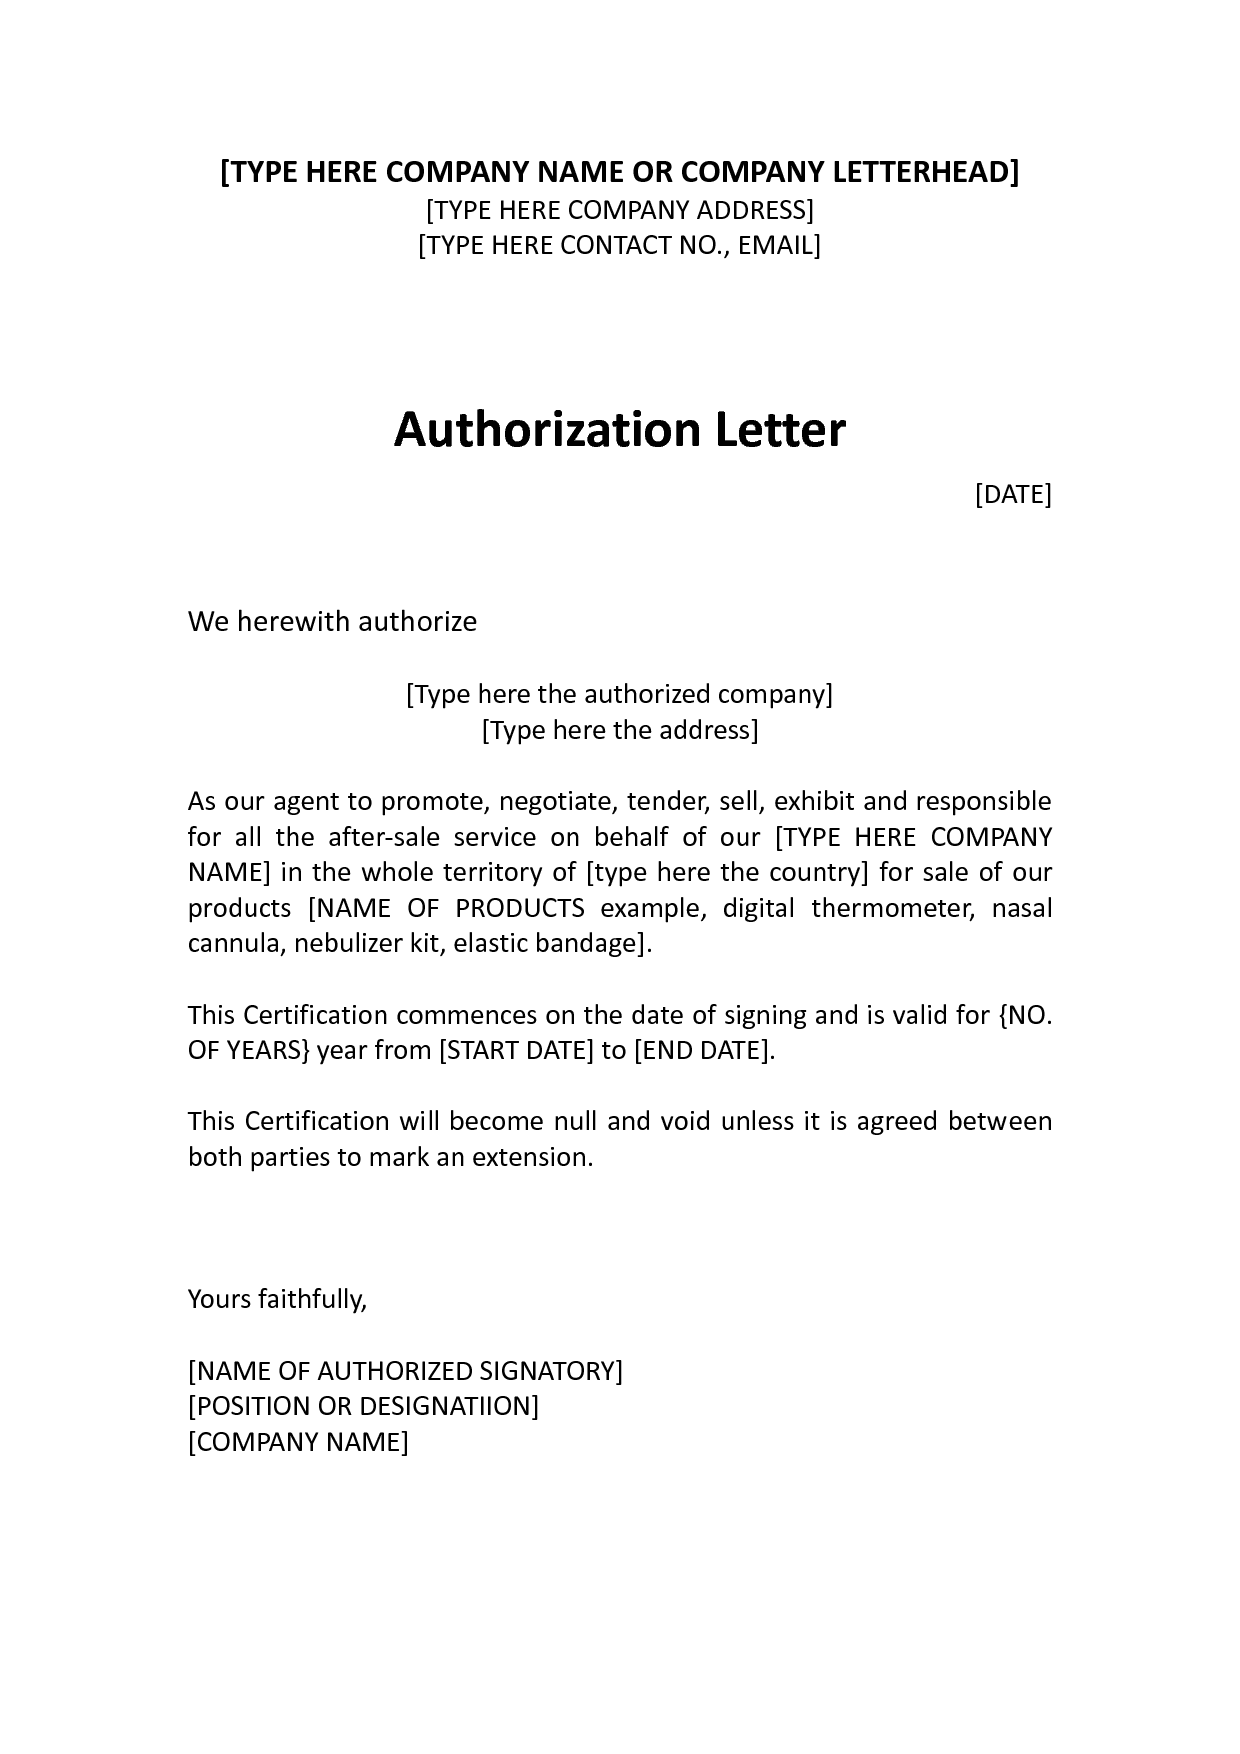 Authorization distributor letter sample distributor dealer authorization distributor letter sample distributor dealer authorization letter given by a company to its thecheapjerseys Gallery